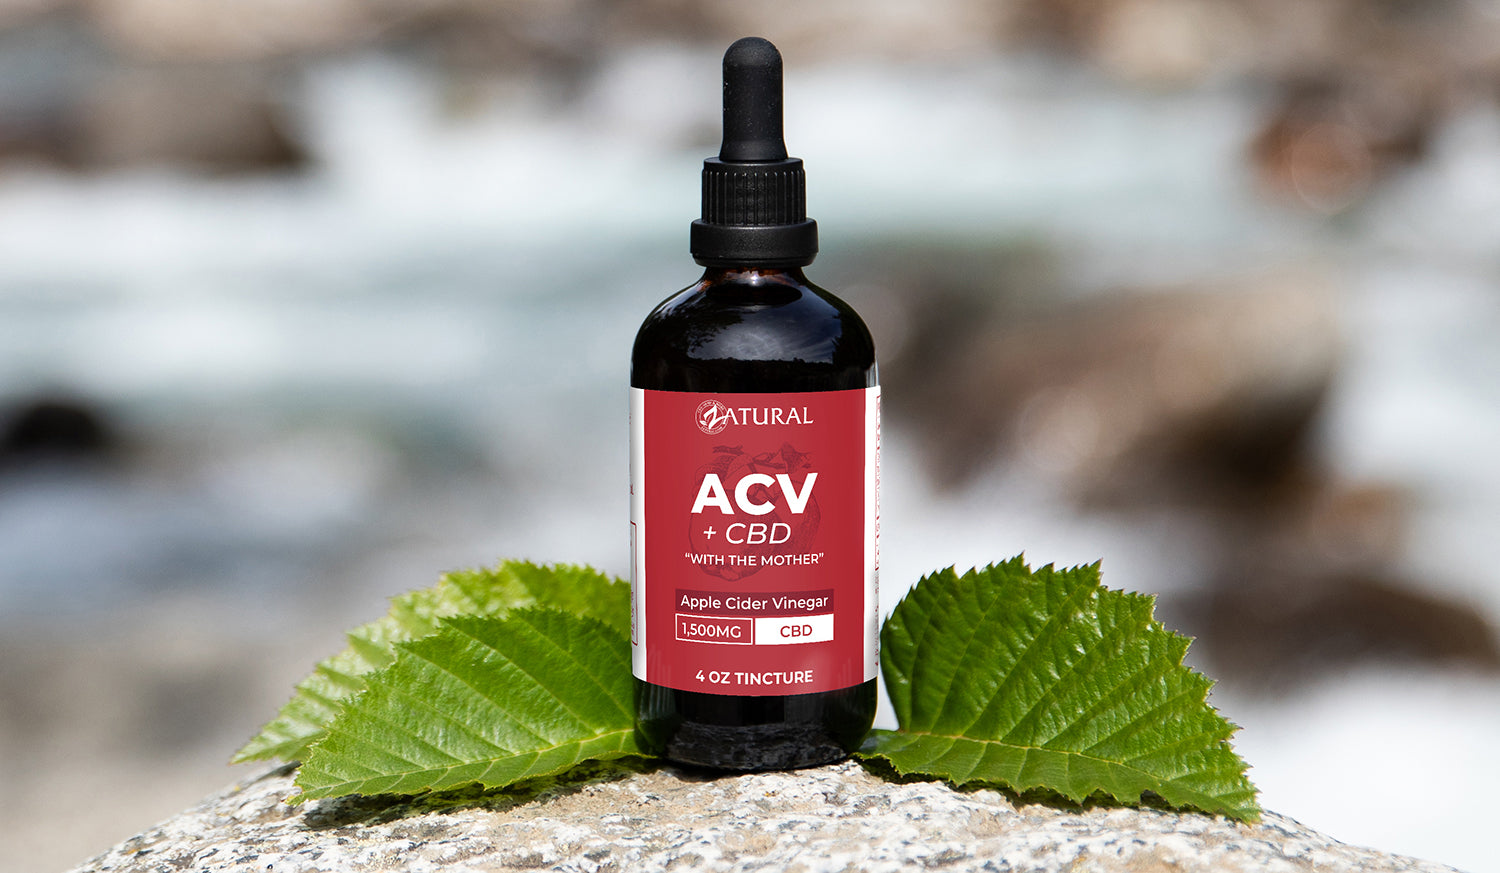 What are the benefits of CBD and apple cider vinegar?